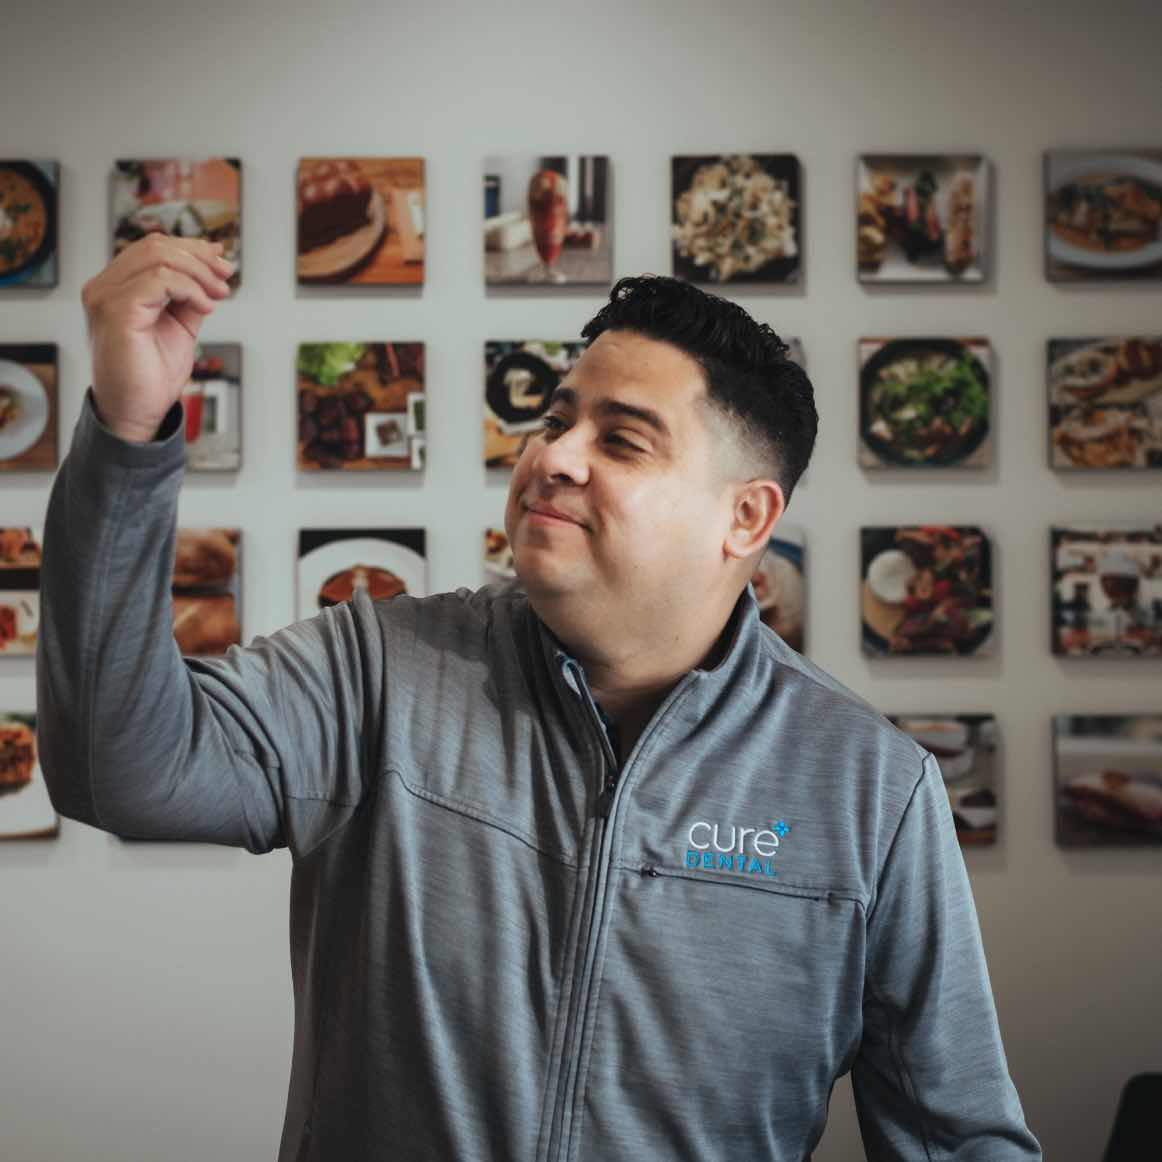 Photo of Dr. Shipley standing in front of a wall of food photography with his hand raised